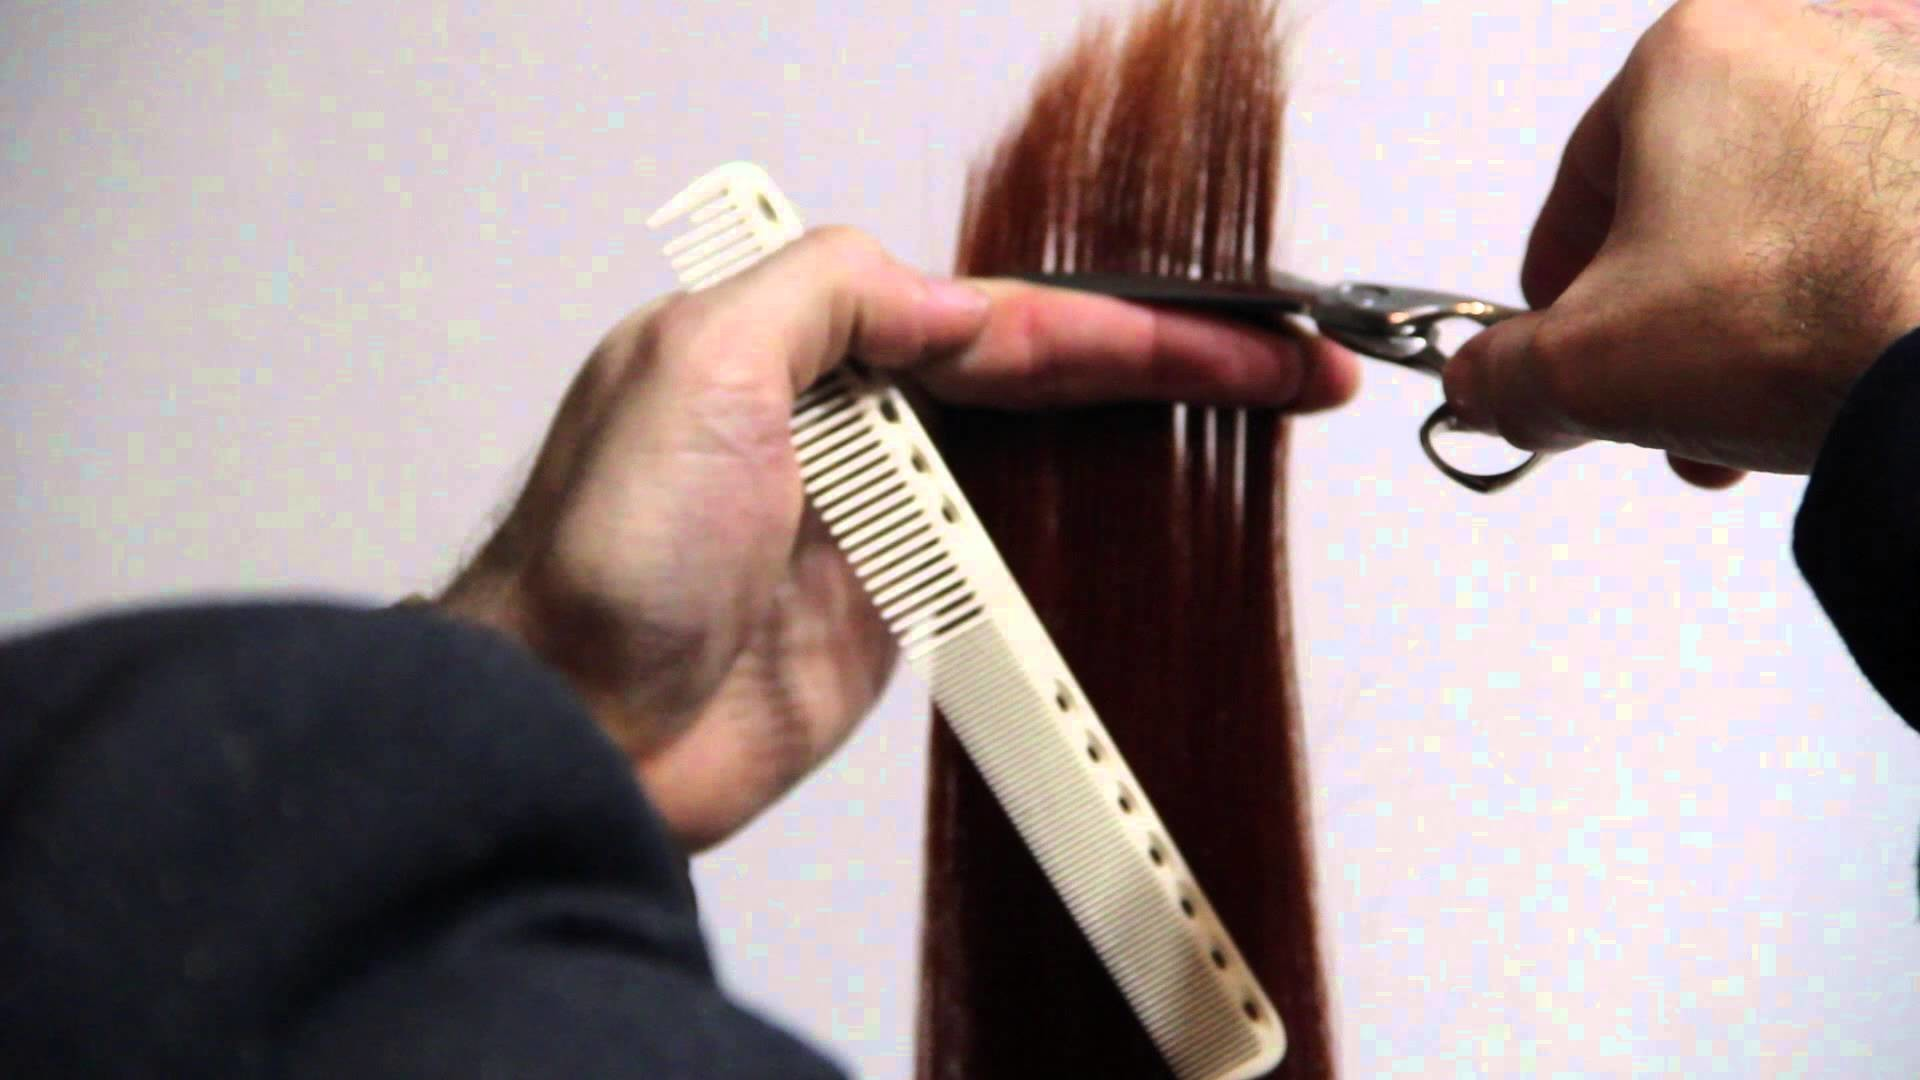 1920x1080 HIGH QUALITY HAIR SCISSORS COMPARED TO ENTRY LEVEL HAIR SCISSORS - YouTube